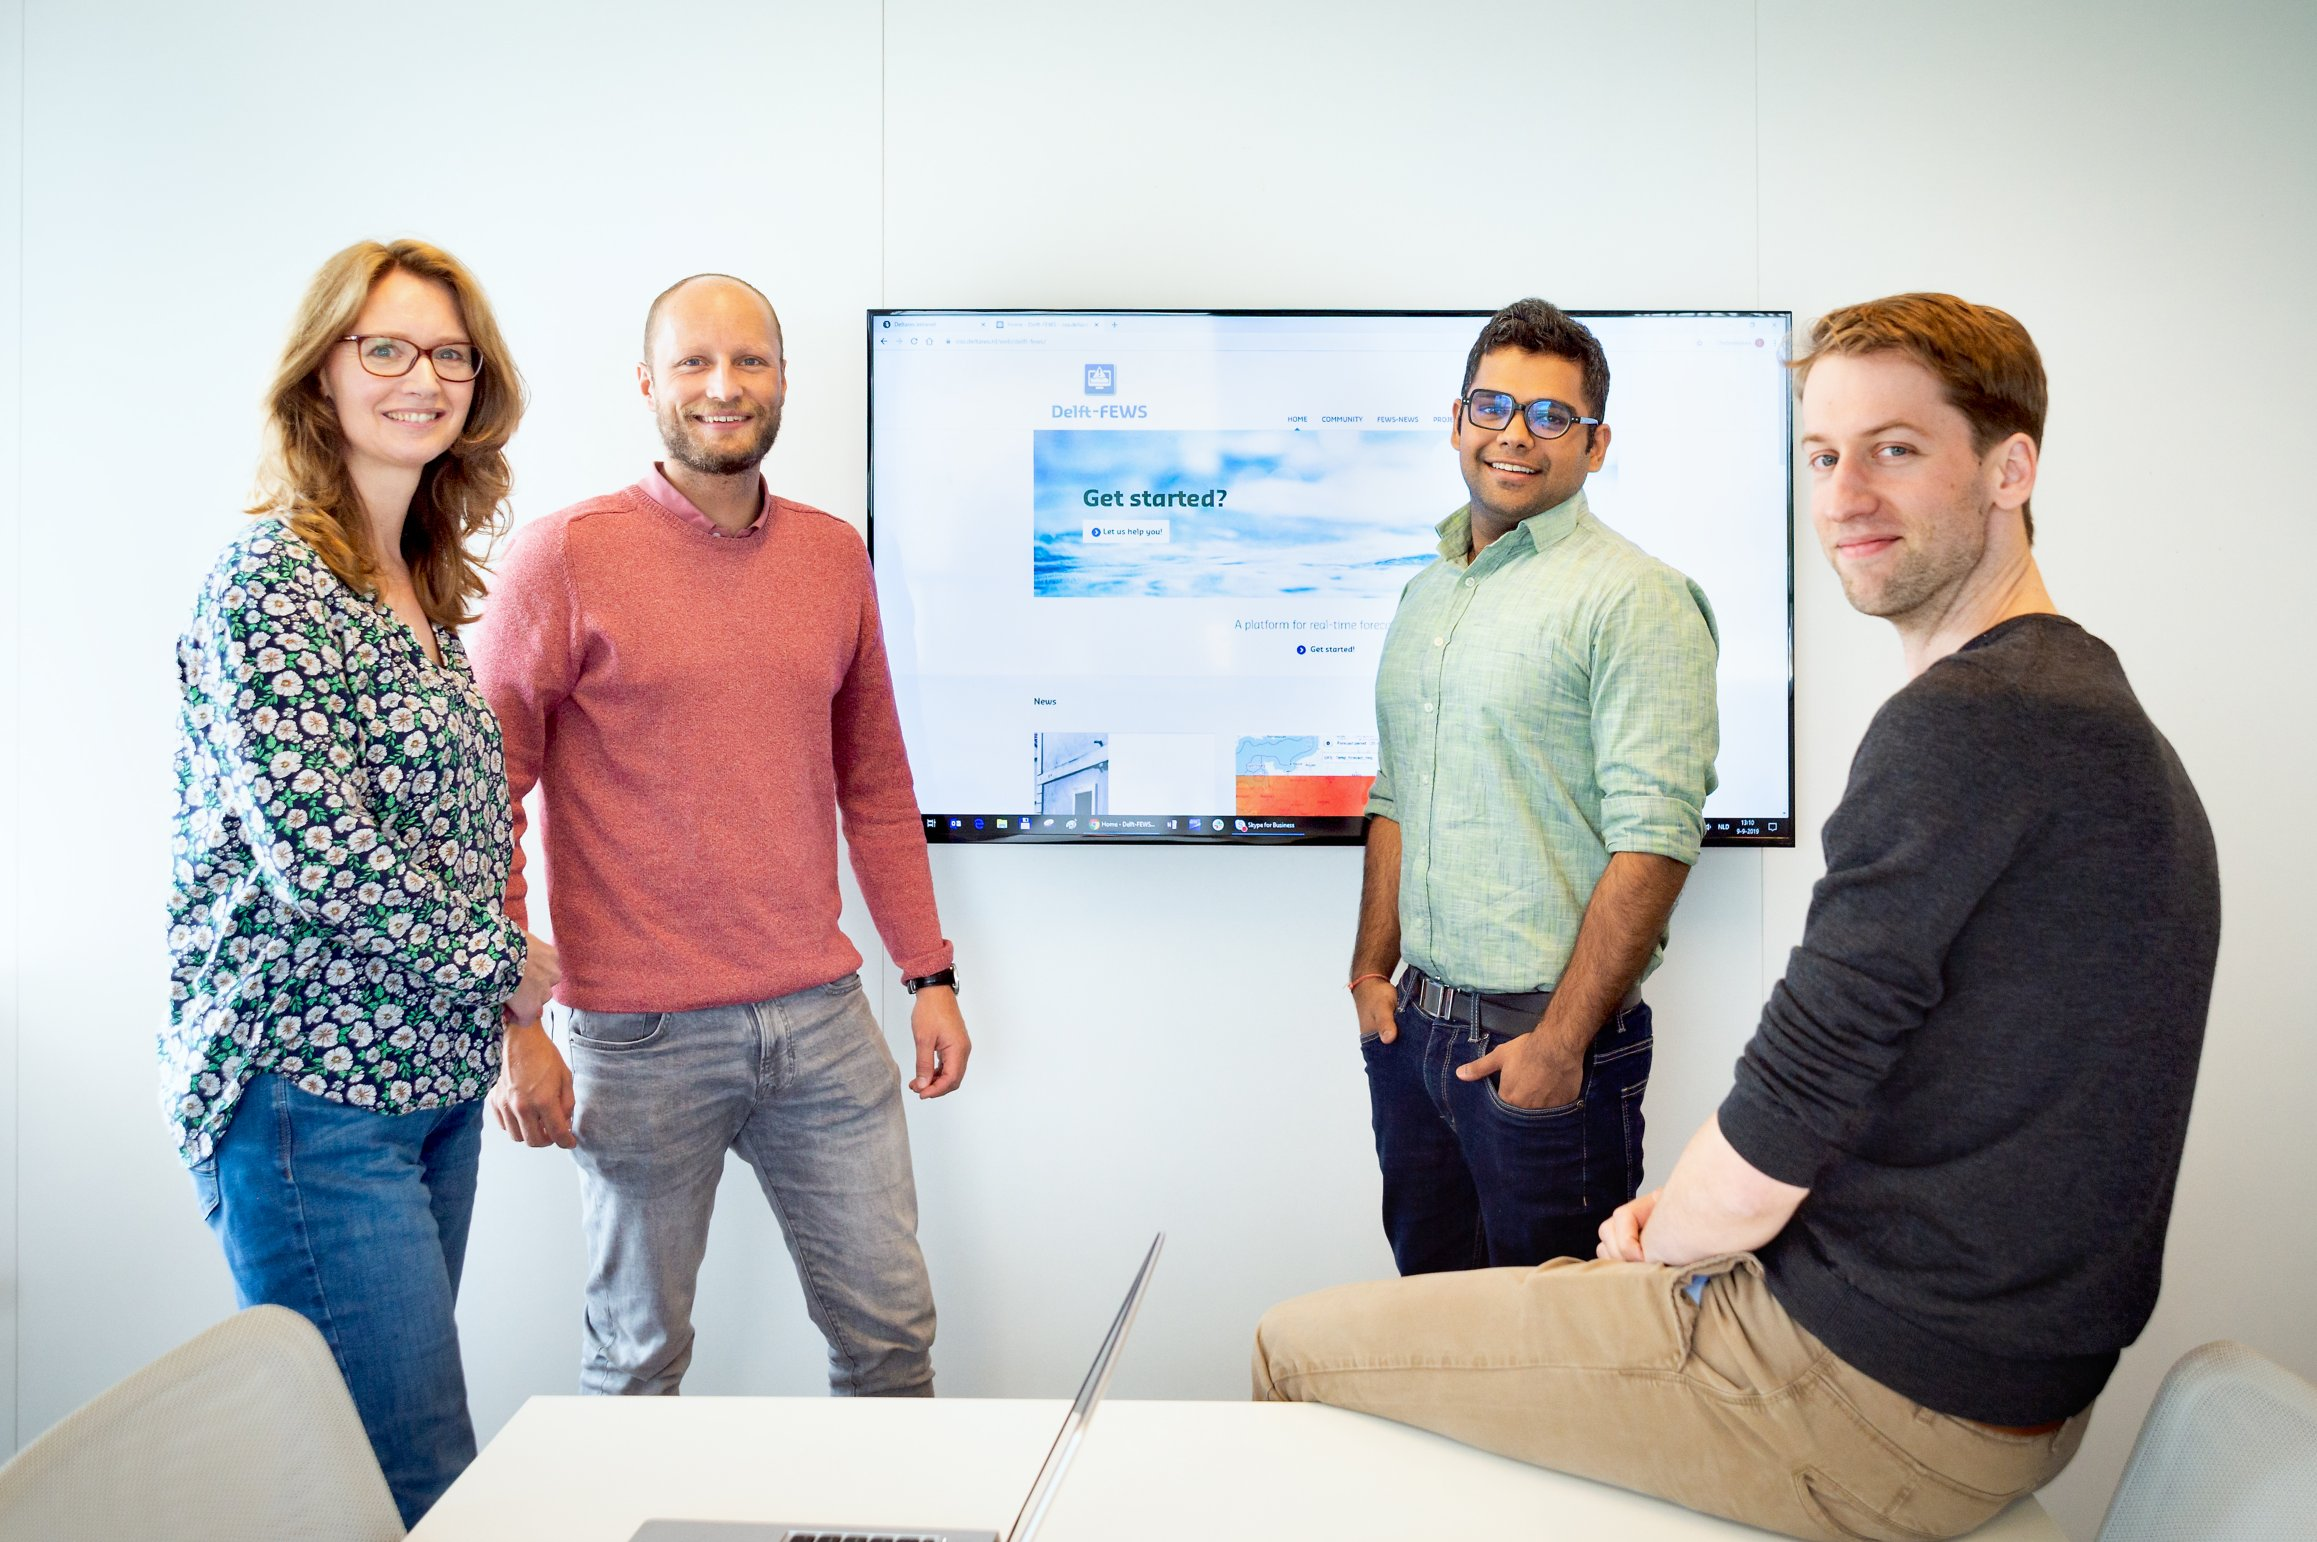 The Delft-FEWS moderators (from left to right): Ilonka, Martijn, Aashish, and Arjen